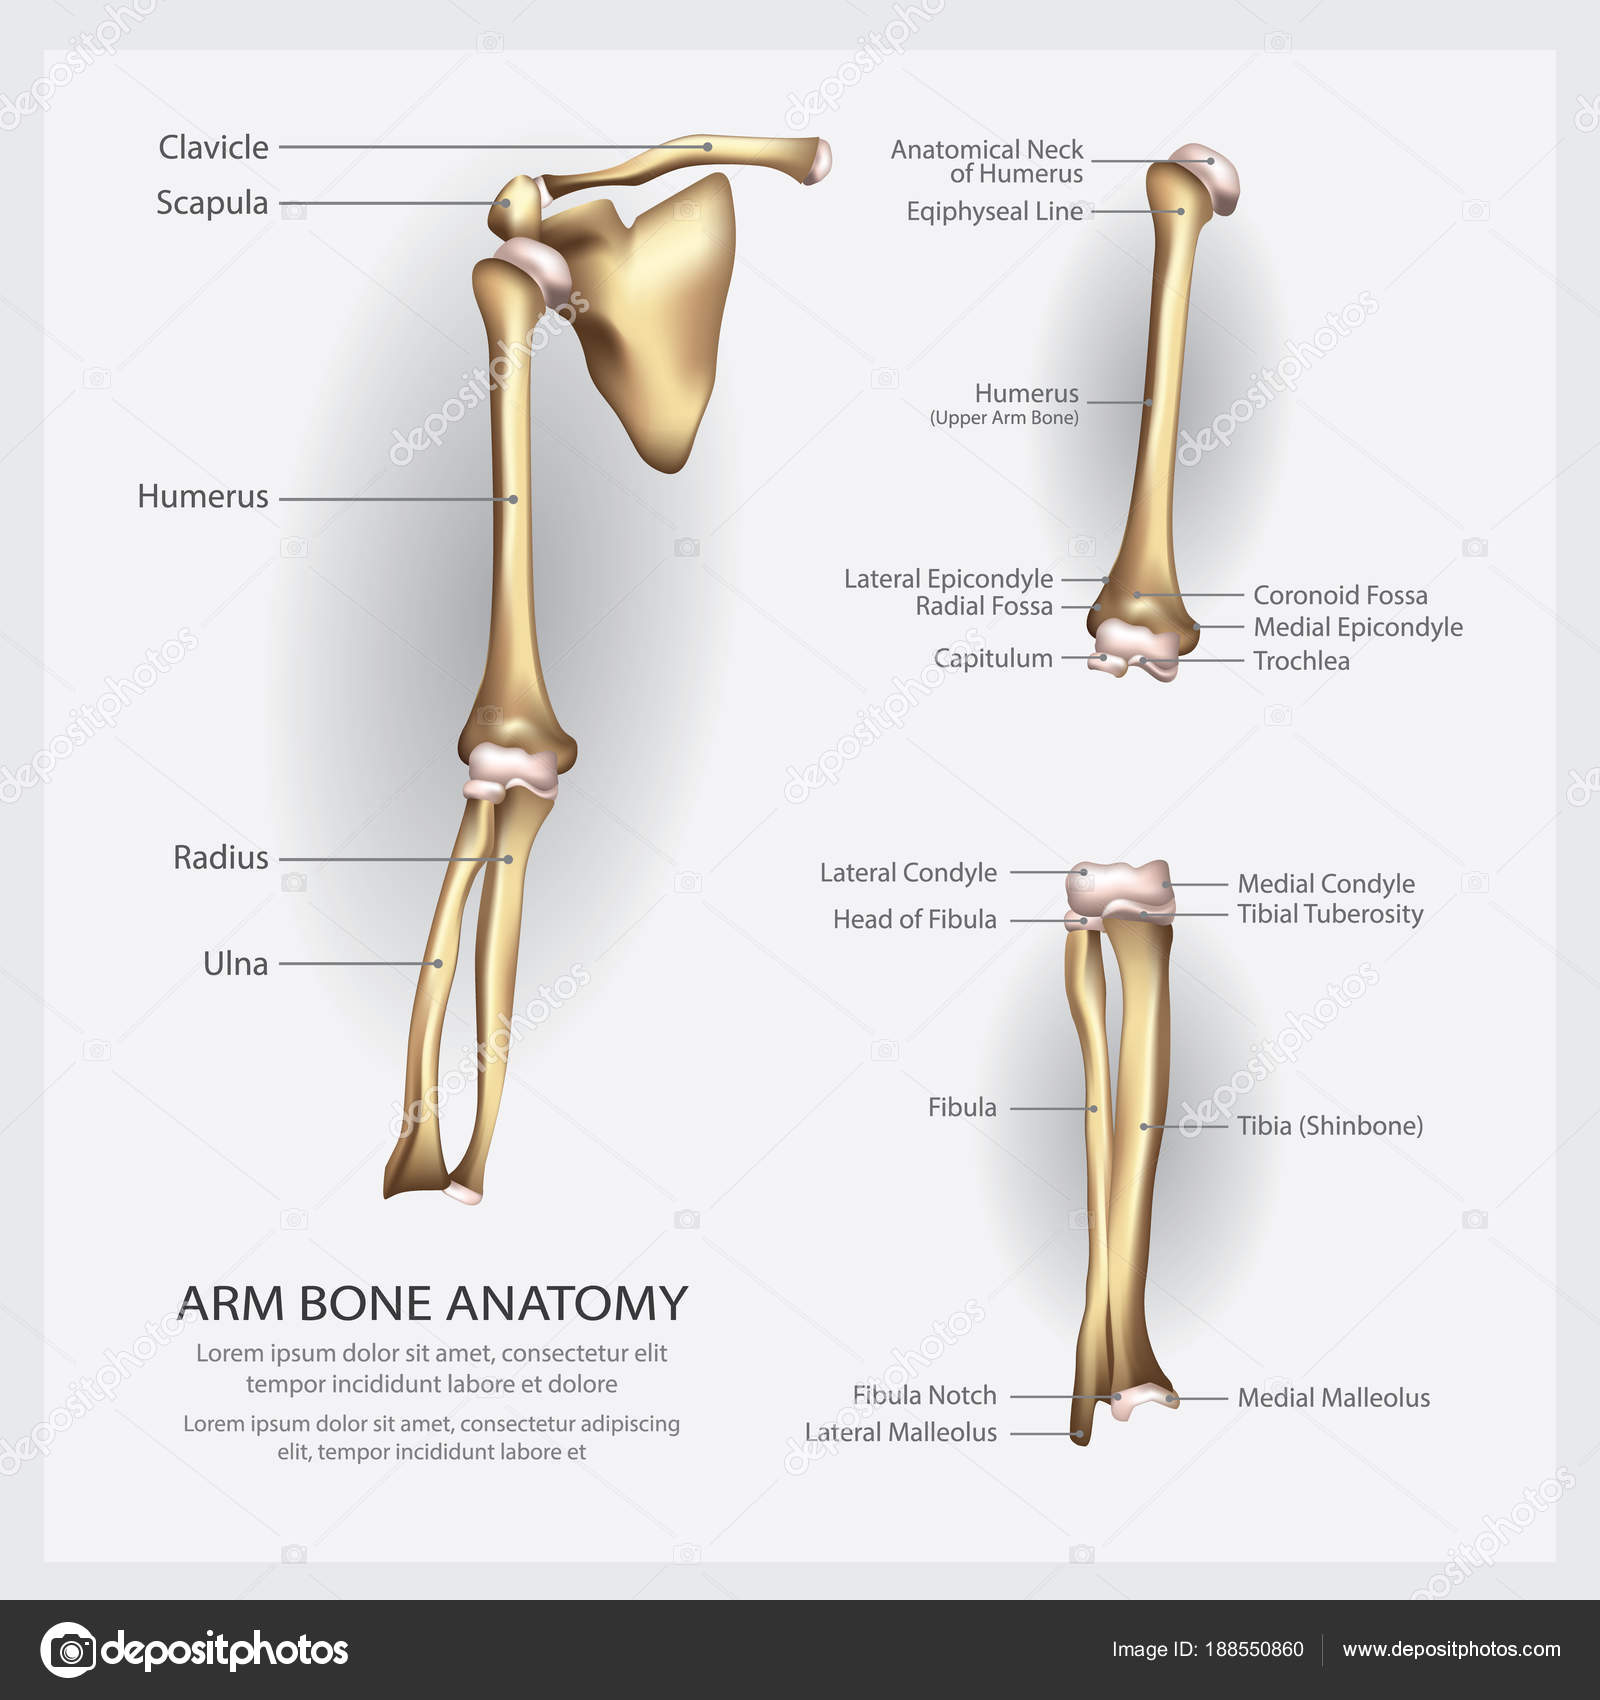 Arm Knochen Anatomie Mit Detail Vektor Illustration — Stockvektor ...